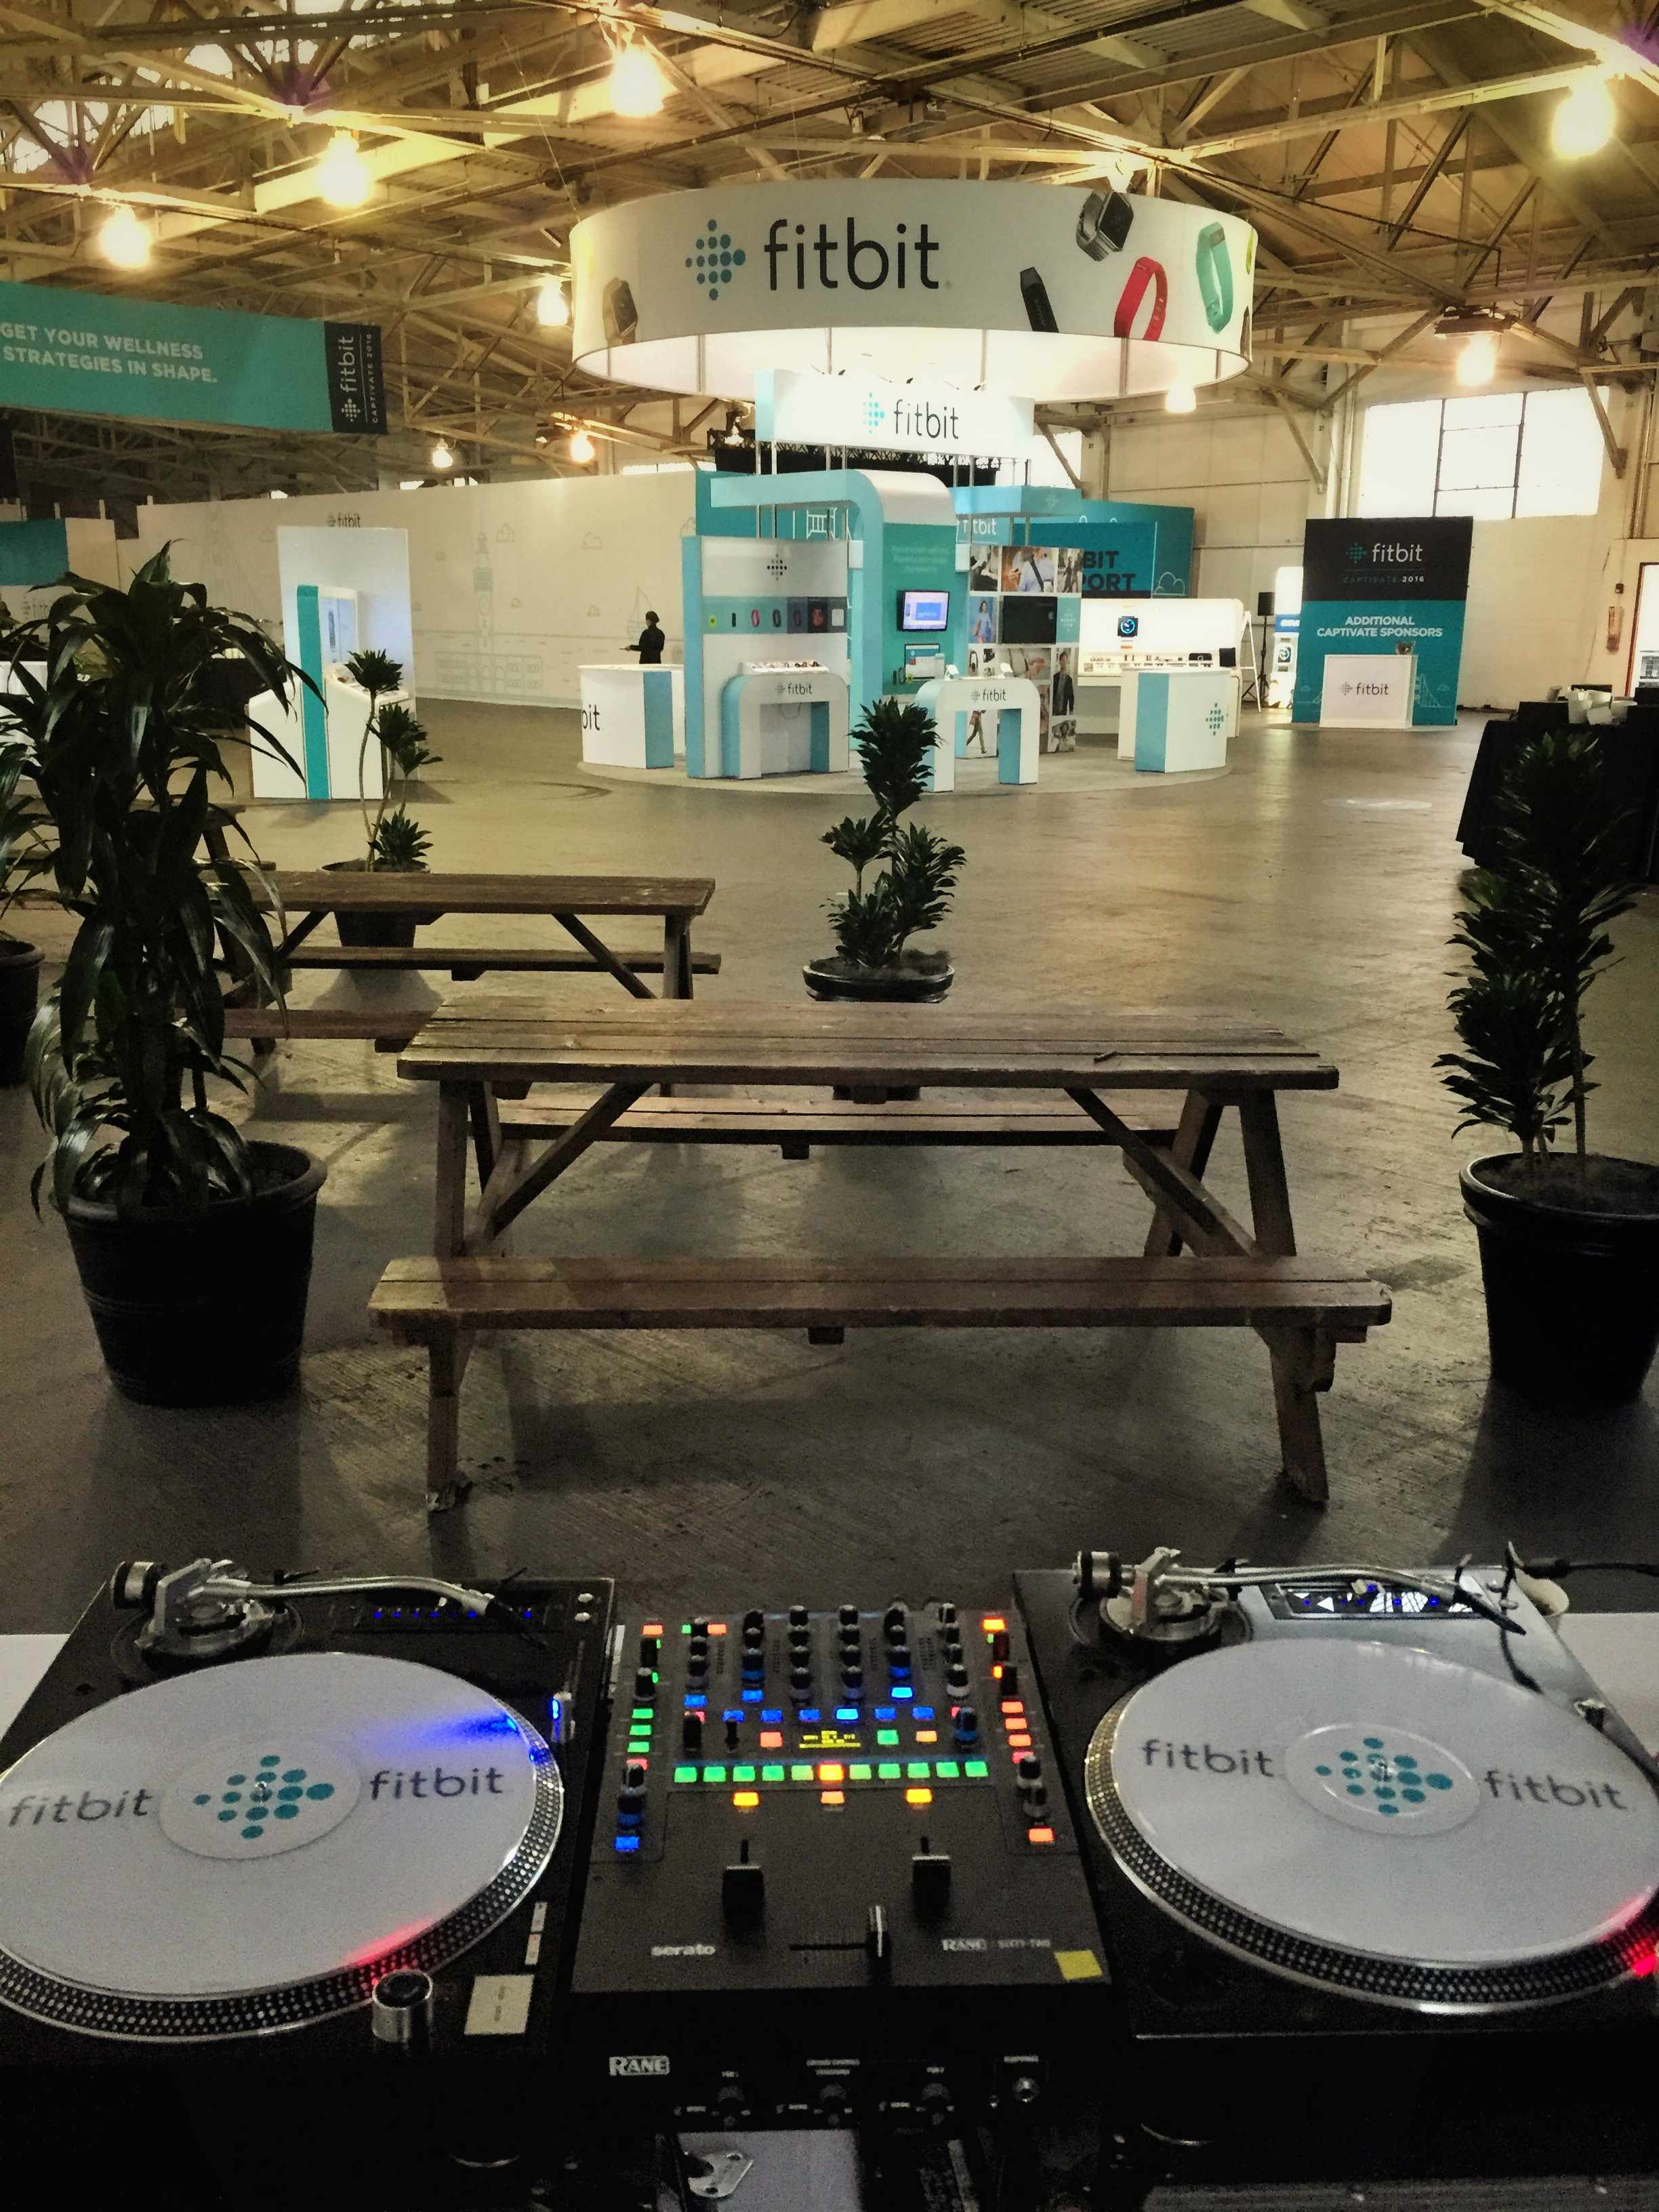 Custom Serato vinyl added the right touch for this Fitbit event.